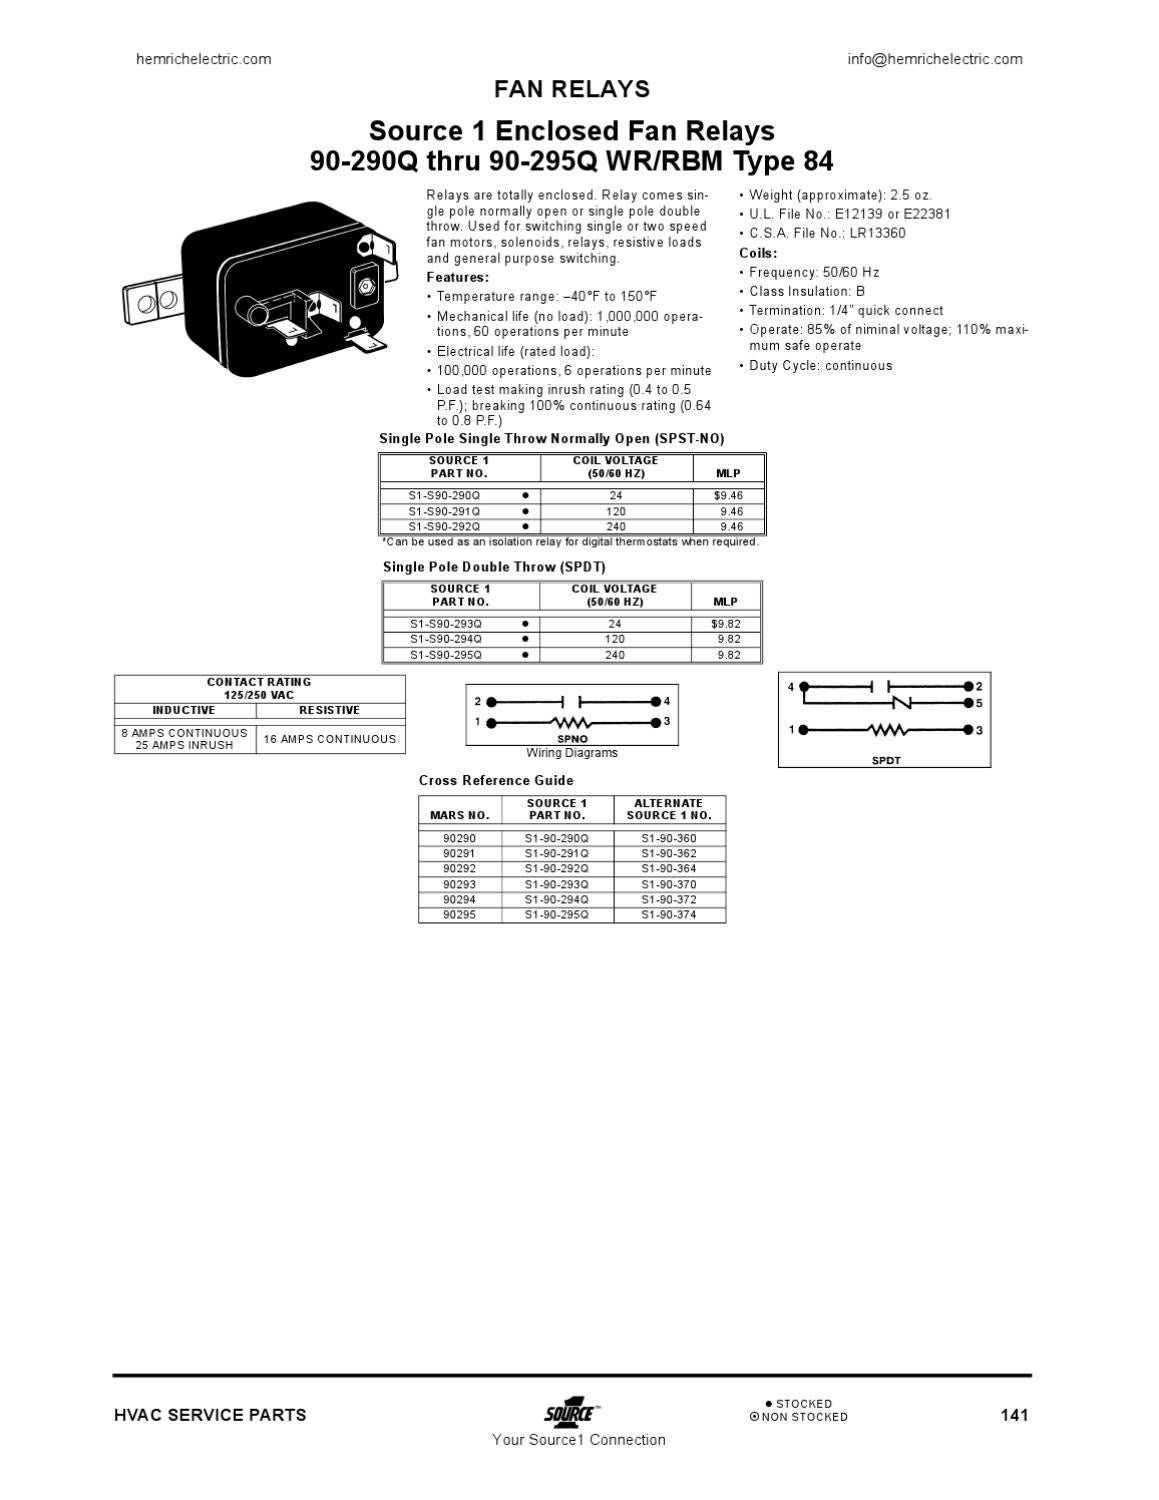 source1 hvac parts and supply by hemrich electric issuu Relay Schematic Wiring Diagram 90 341 relay switch wiring diagram